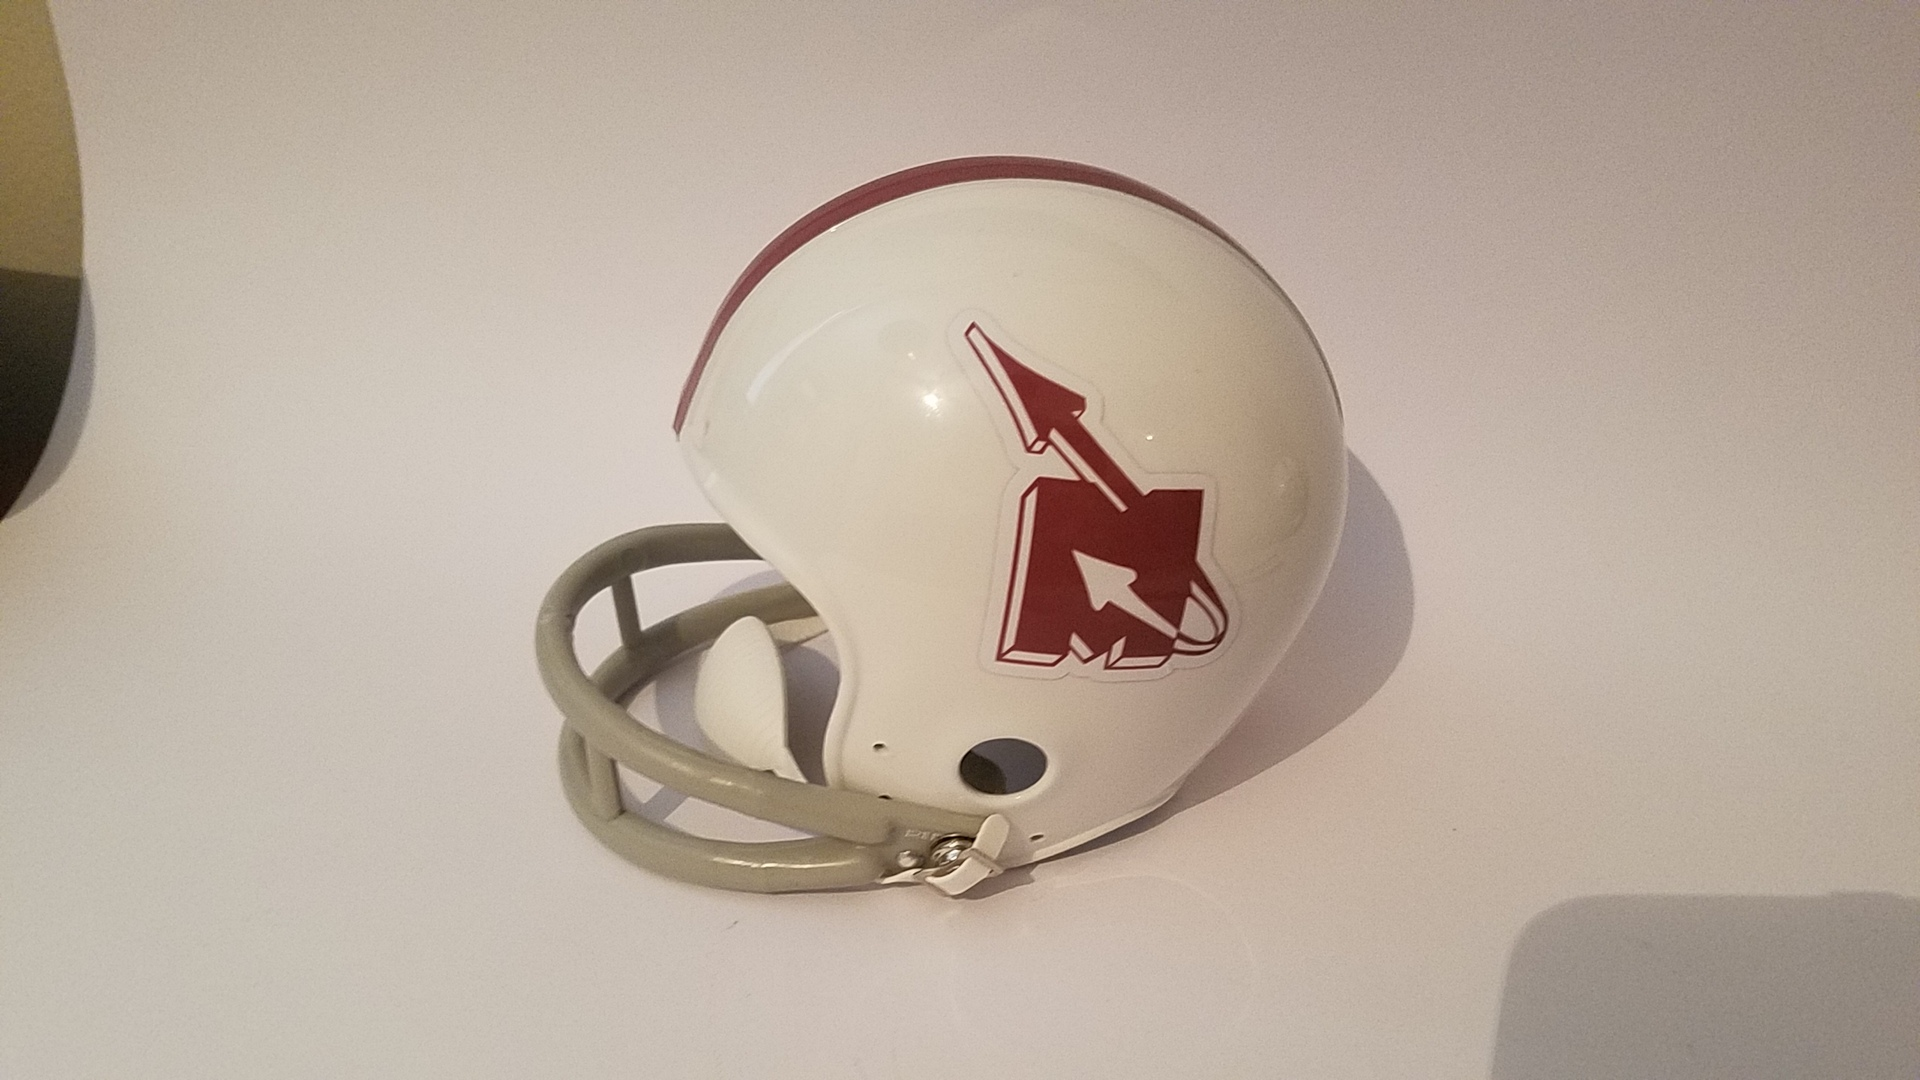 Wade's photograph of their Helmet Stickers